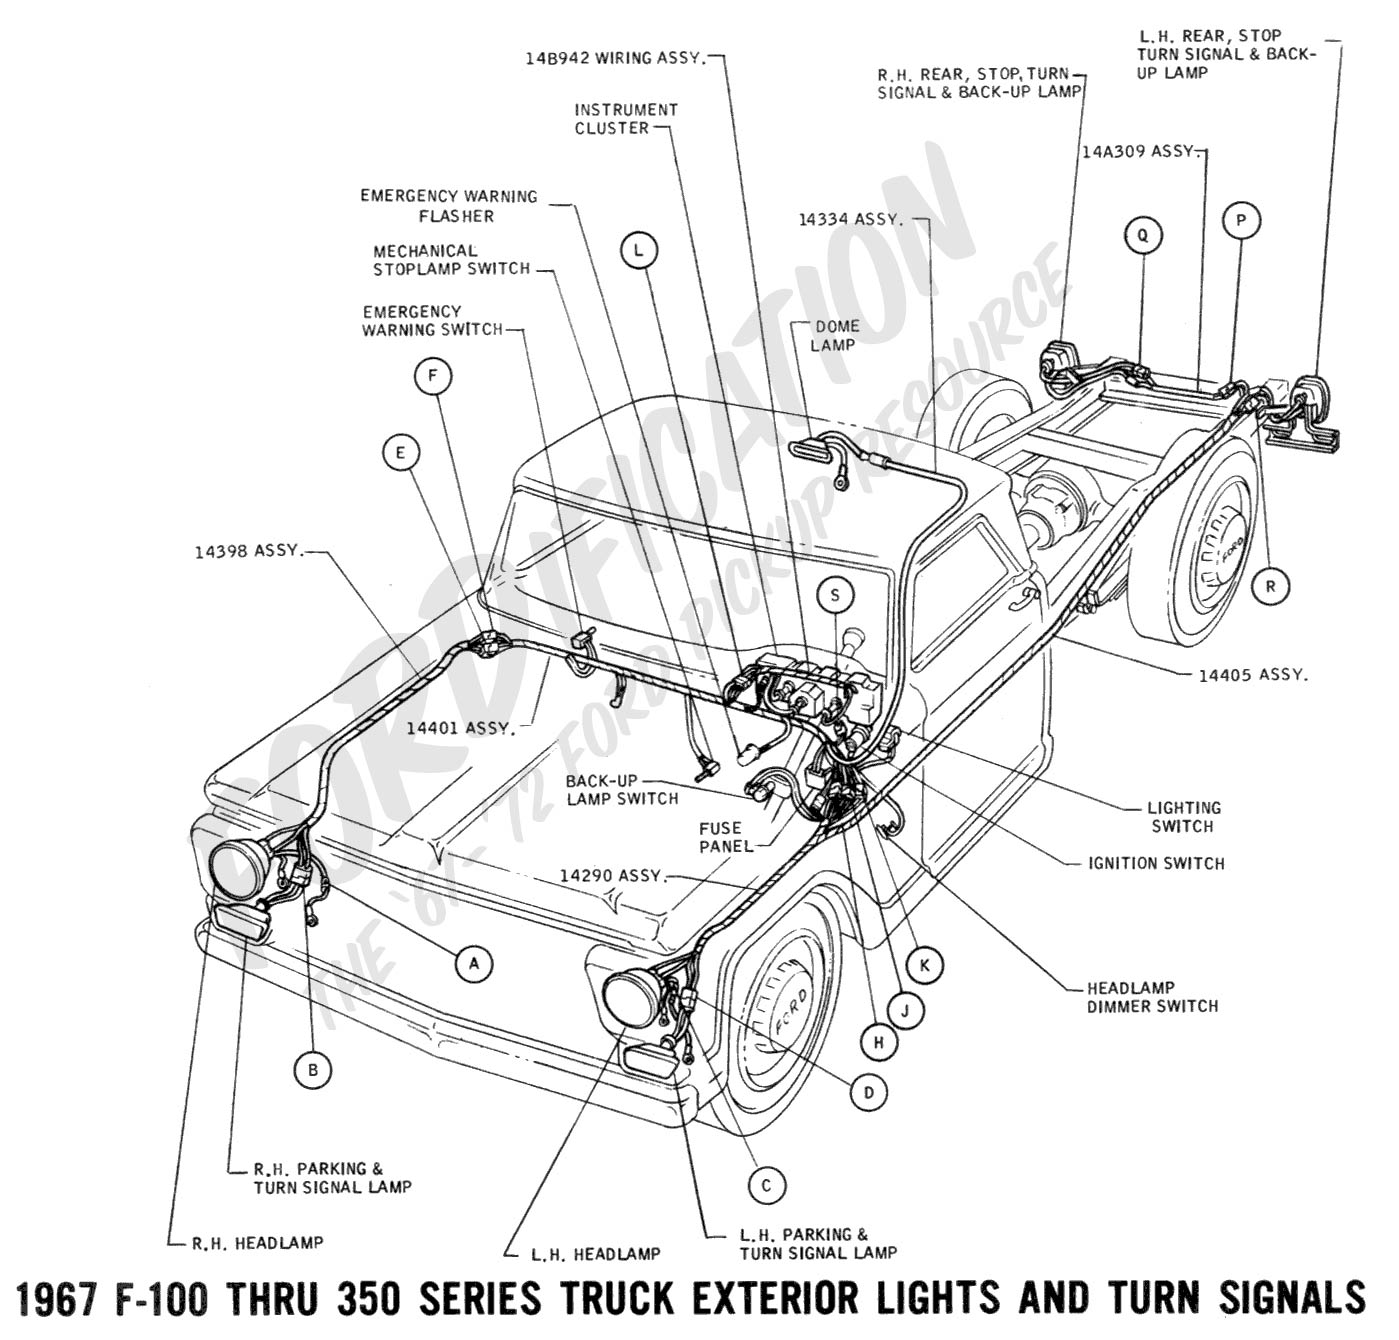 transmission for 2004 f350 wiring schematic ford truck technical drawings and schematics section h wiring  ford truck technical drawings and